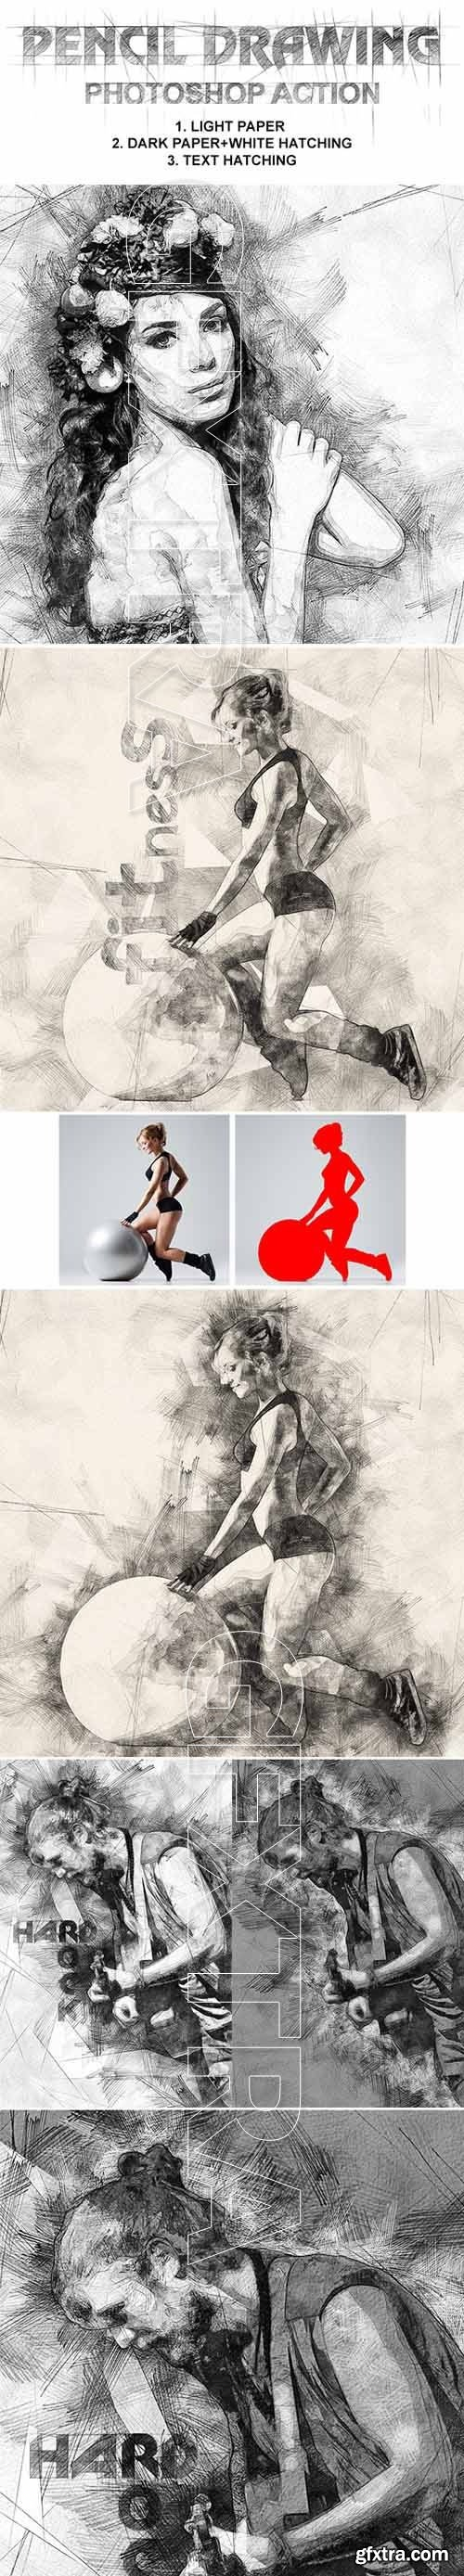 GraphicRiver - Pencil Drawing Photoshop Action 19737502